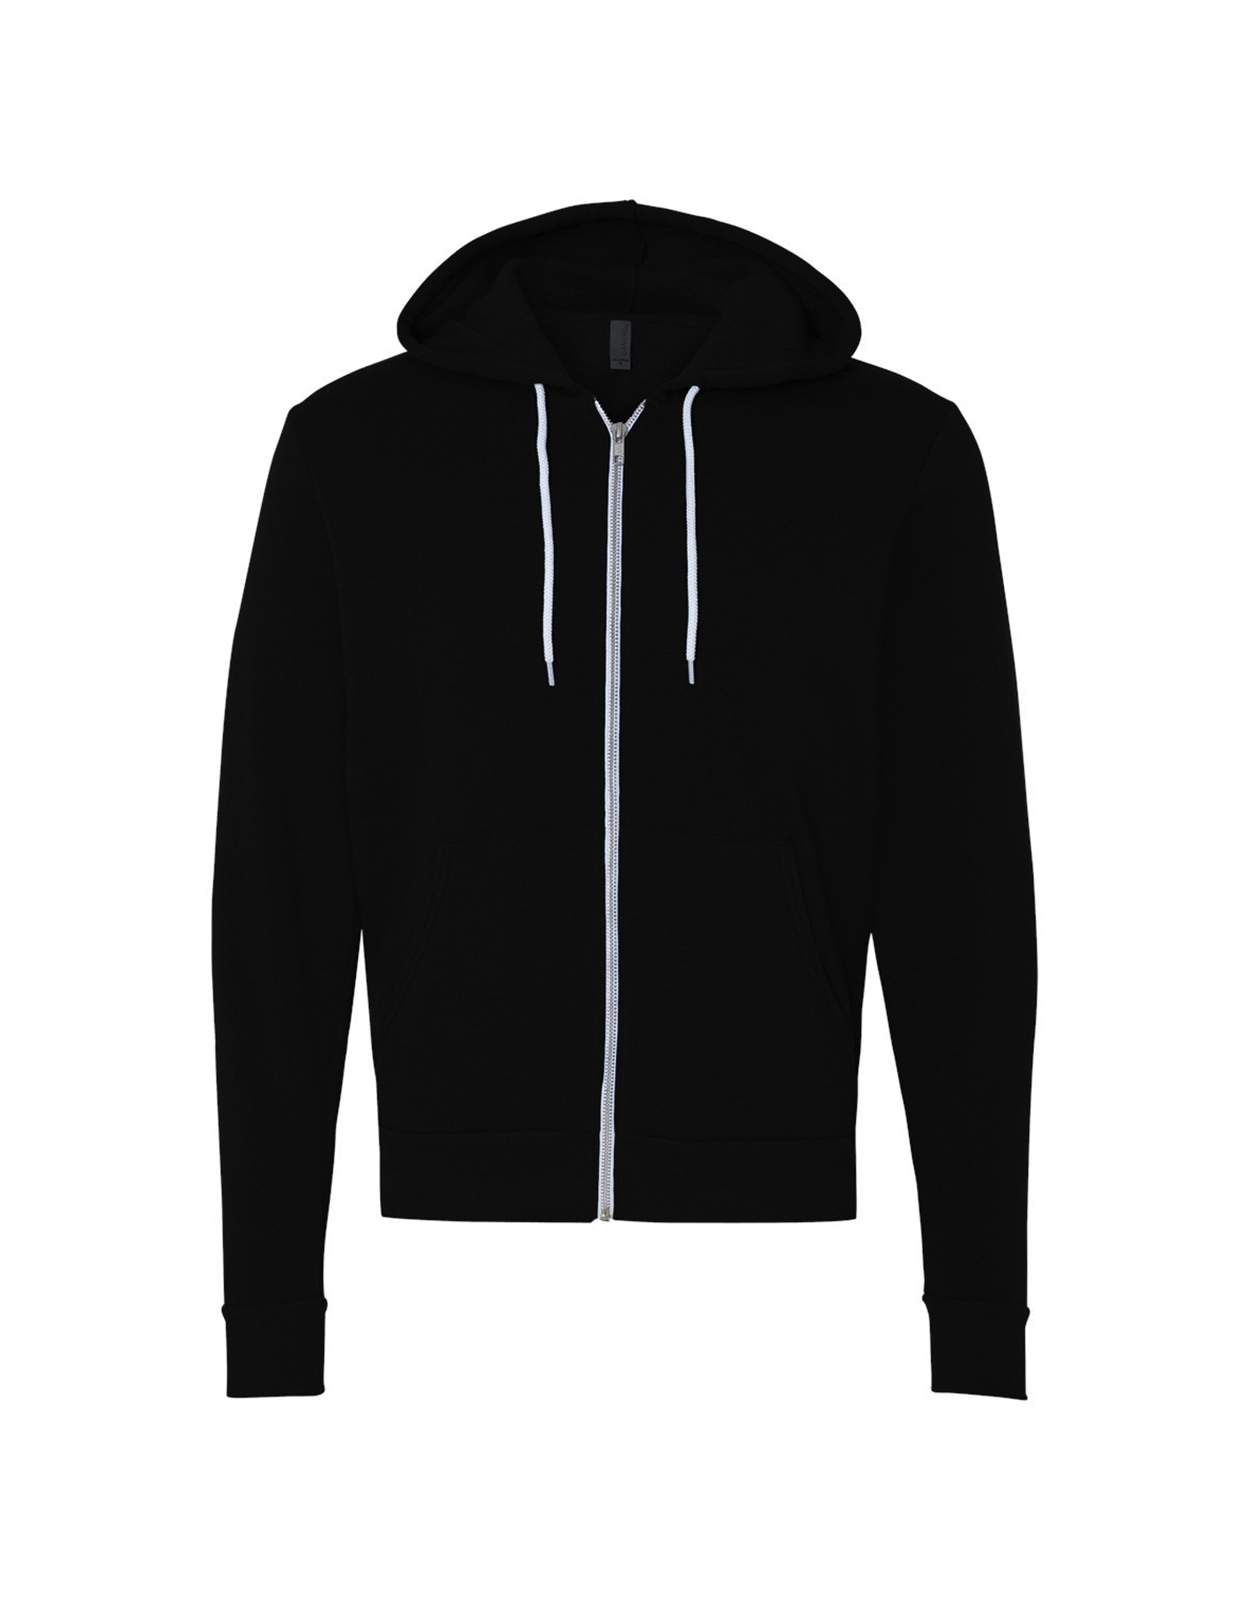 Bella + Canvas - Unisex Full-Zip Hooded Sweatshirt - 3739